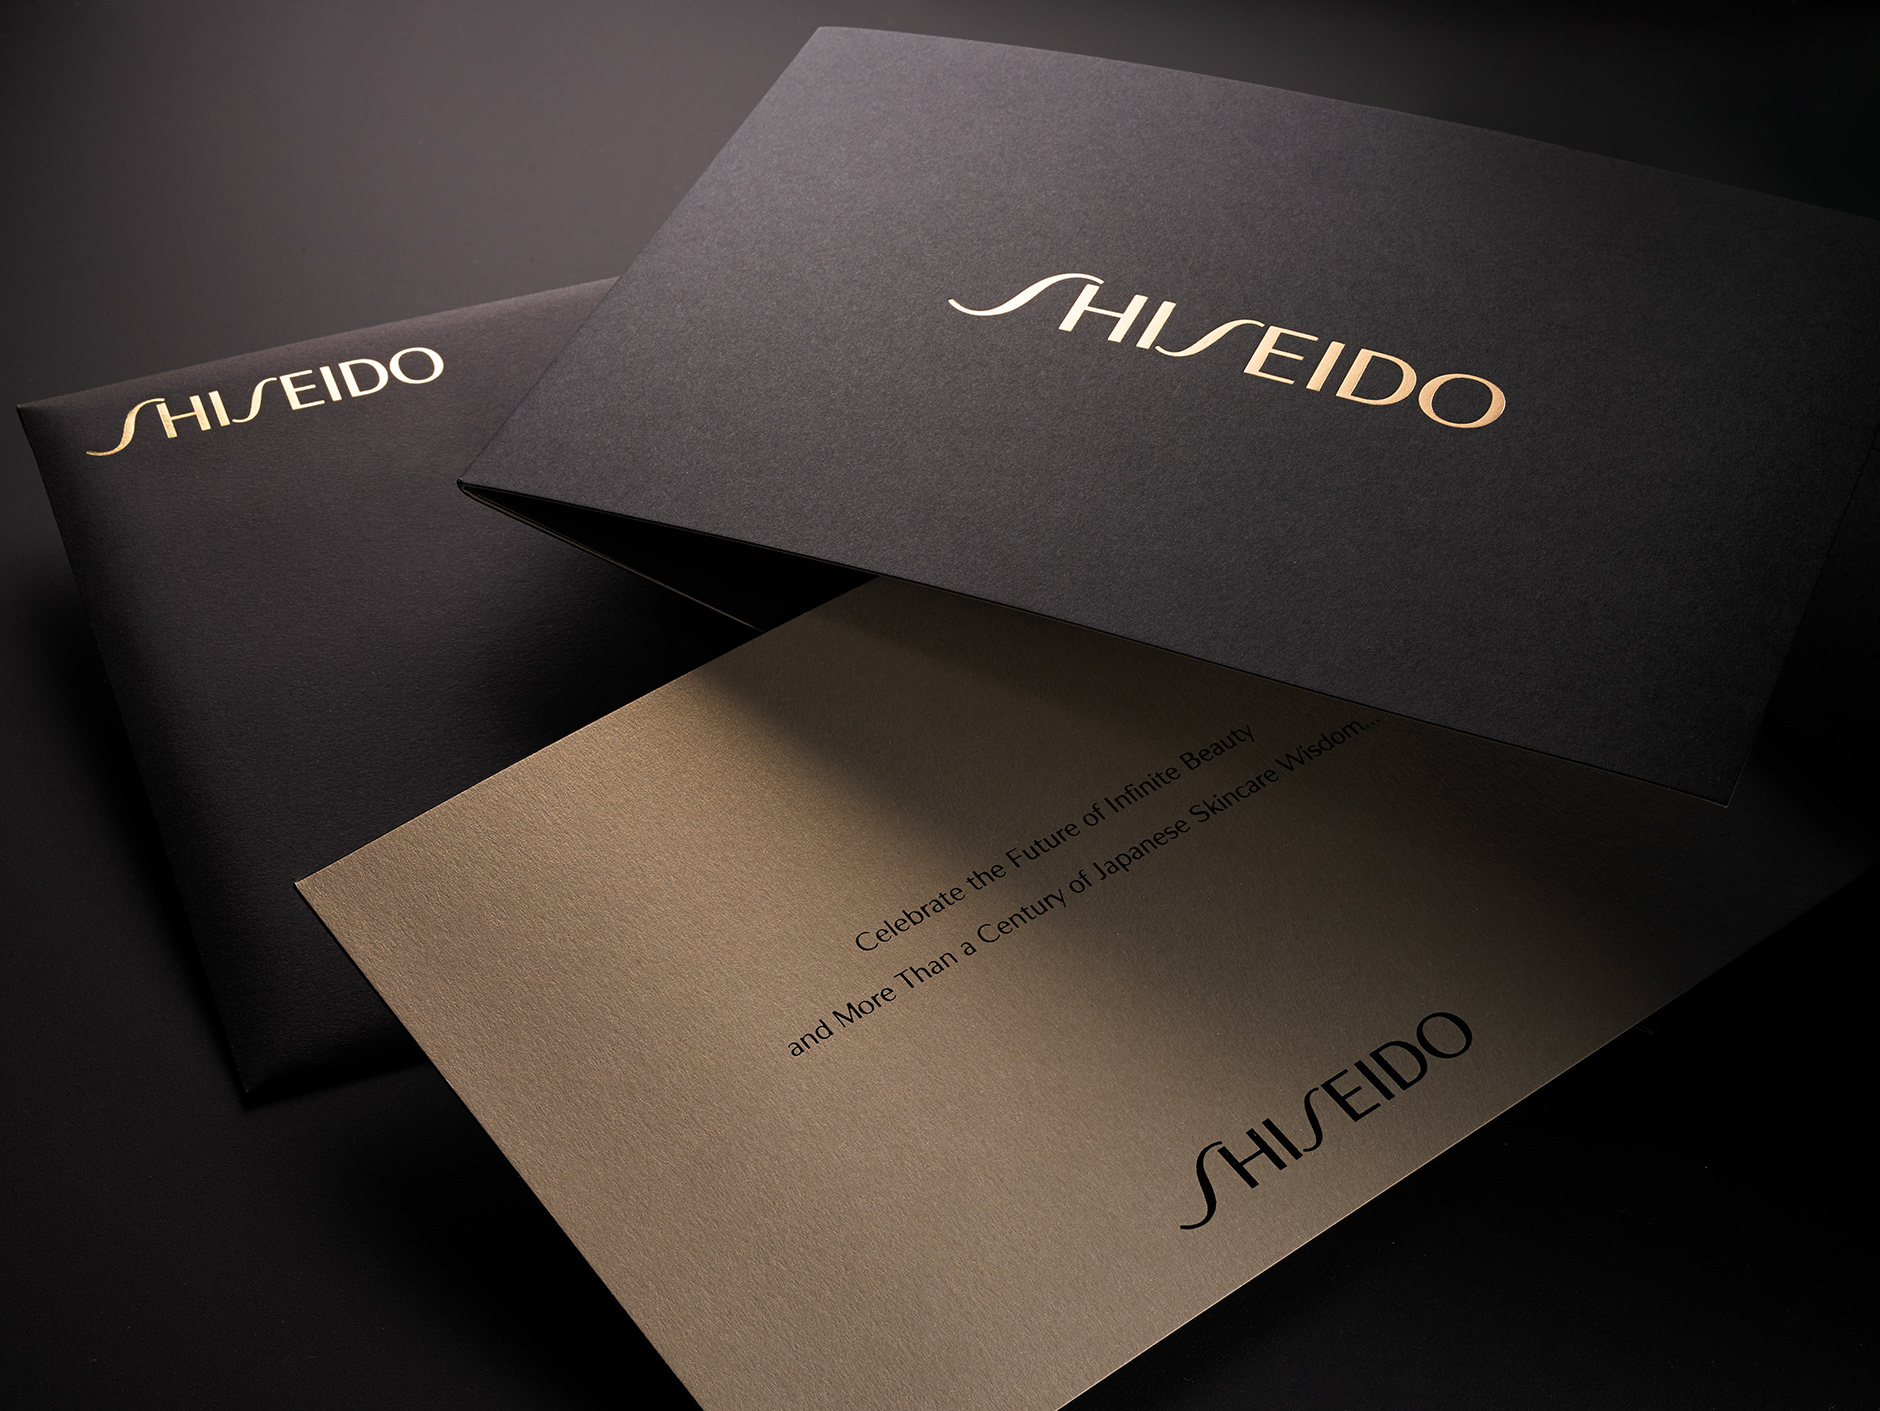 Shiseido Invite/Envelope Mailer   For this beautiful mailer we gold foil-stamped a solid black uncoated envelope with the Shiseido logotype. The invite text was also black and gold foil-stamped and mounted with a solid black and pearlized bronze cover stock. Their clients loved the substantial and luxurious feel!